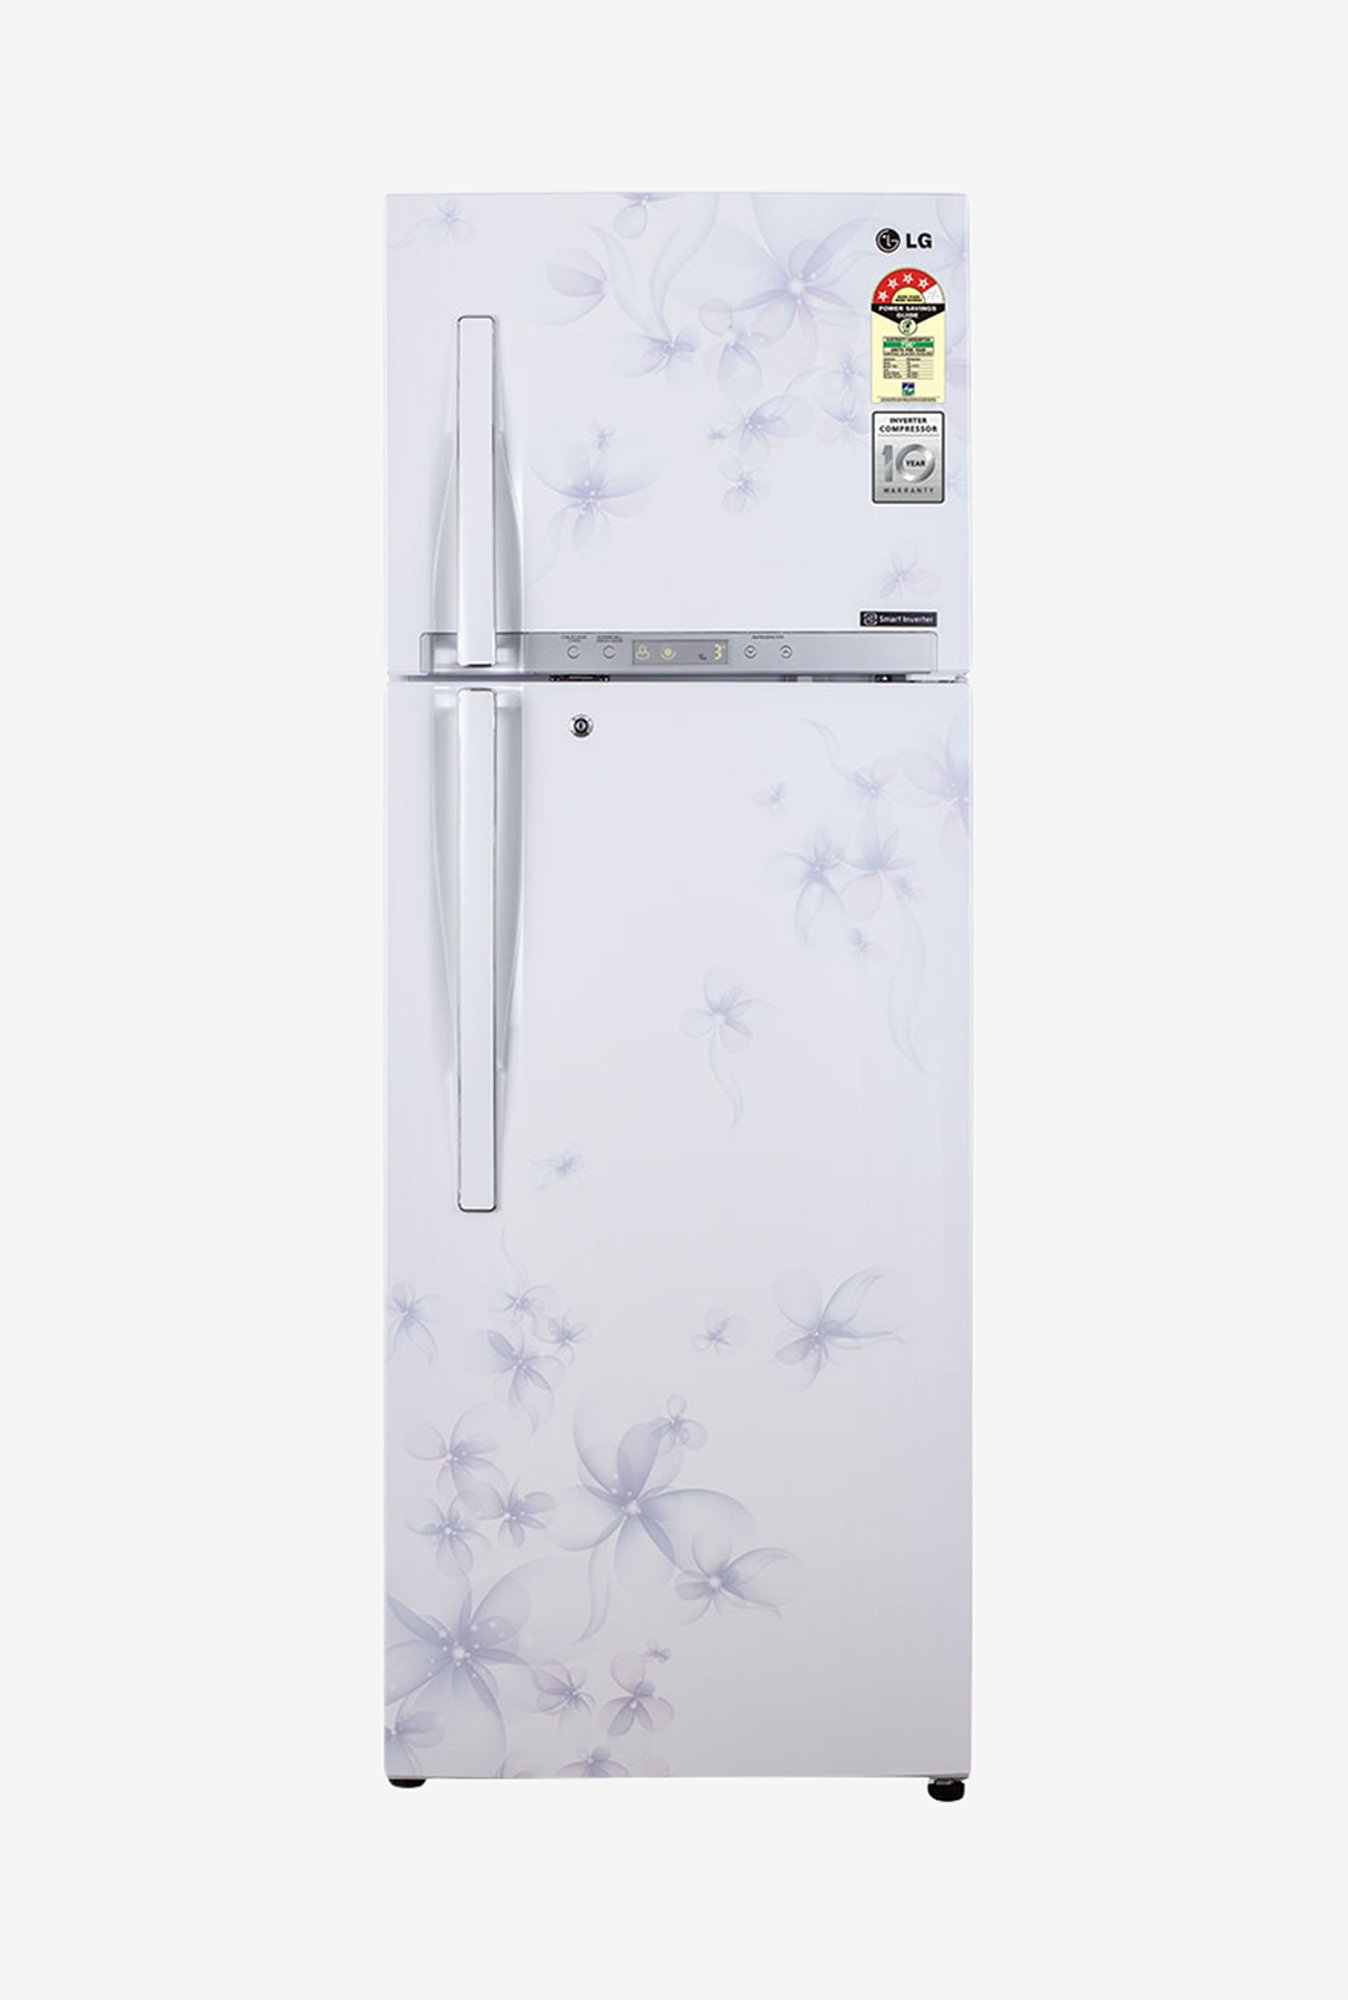 LG 360 L Double Door GL-D402HDW Refrigerator Daffodil White